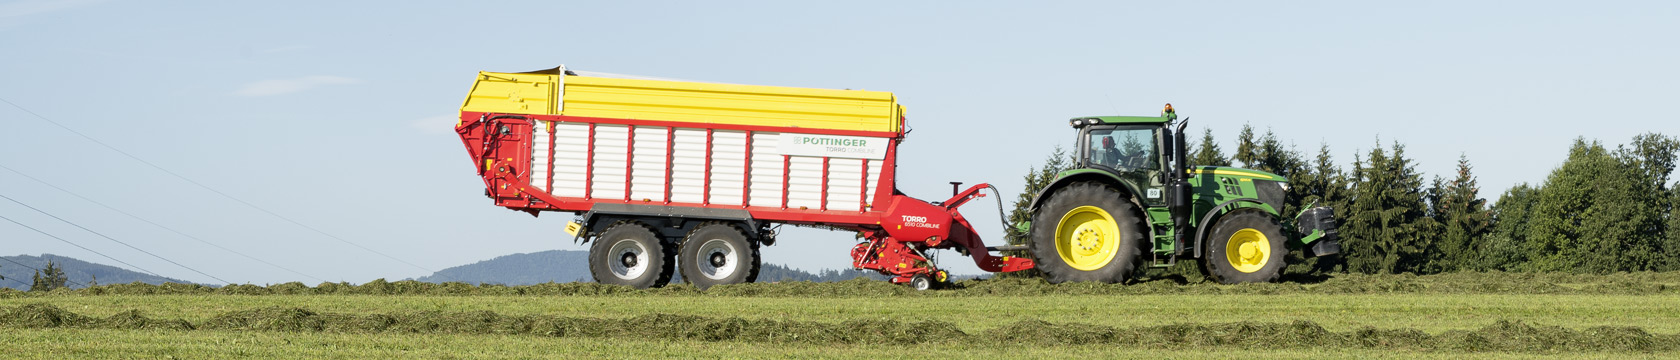 TORRO COMBILINE 2 in 1 loader wagon technology